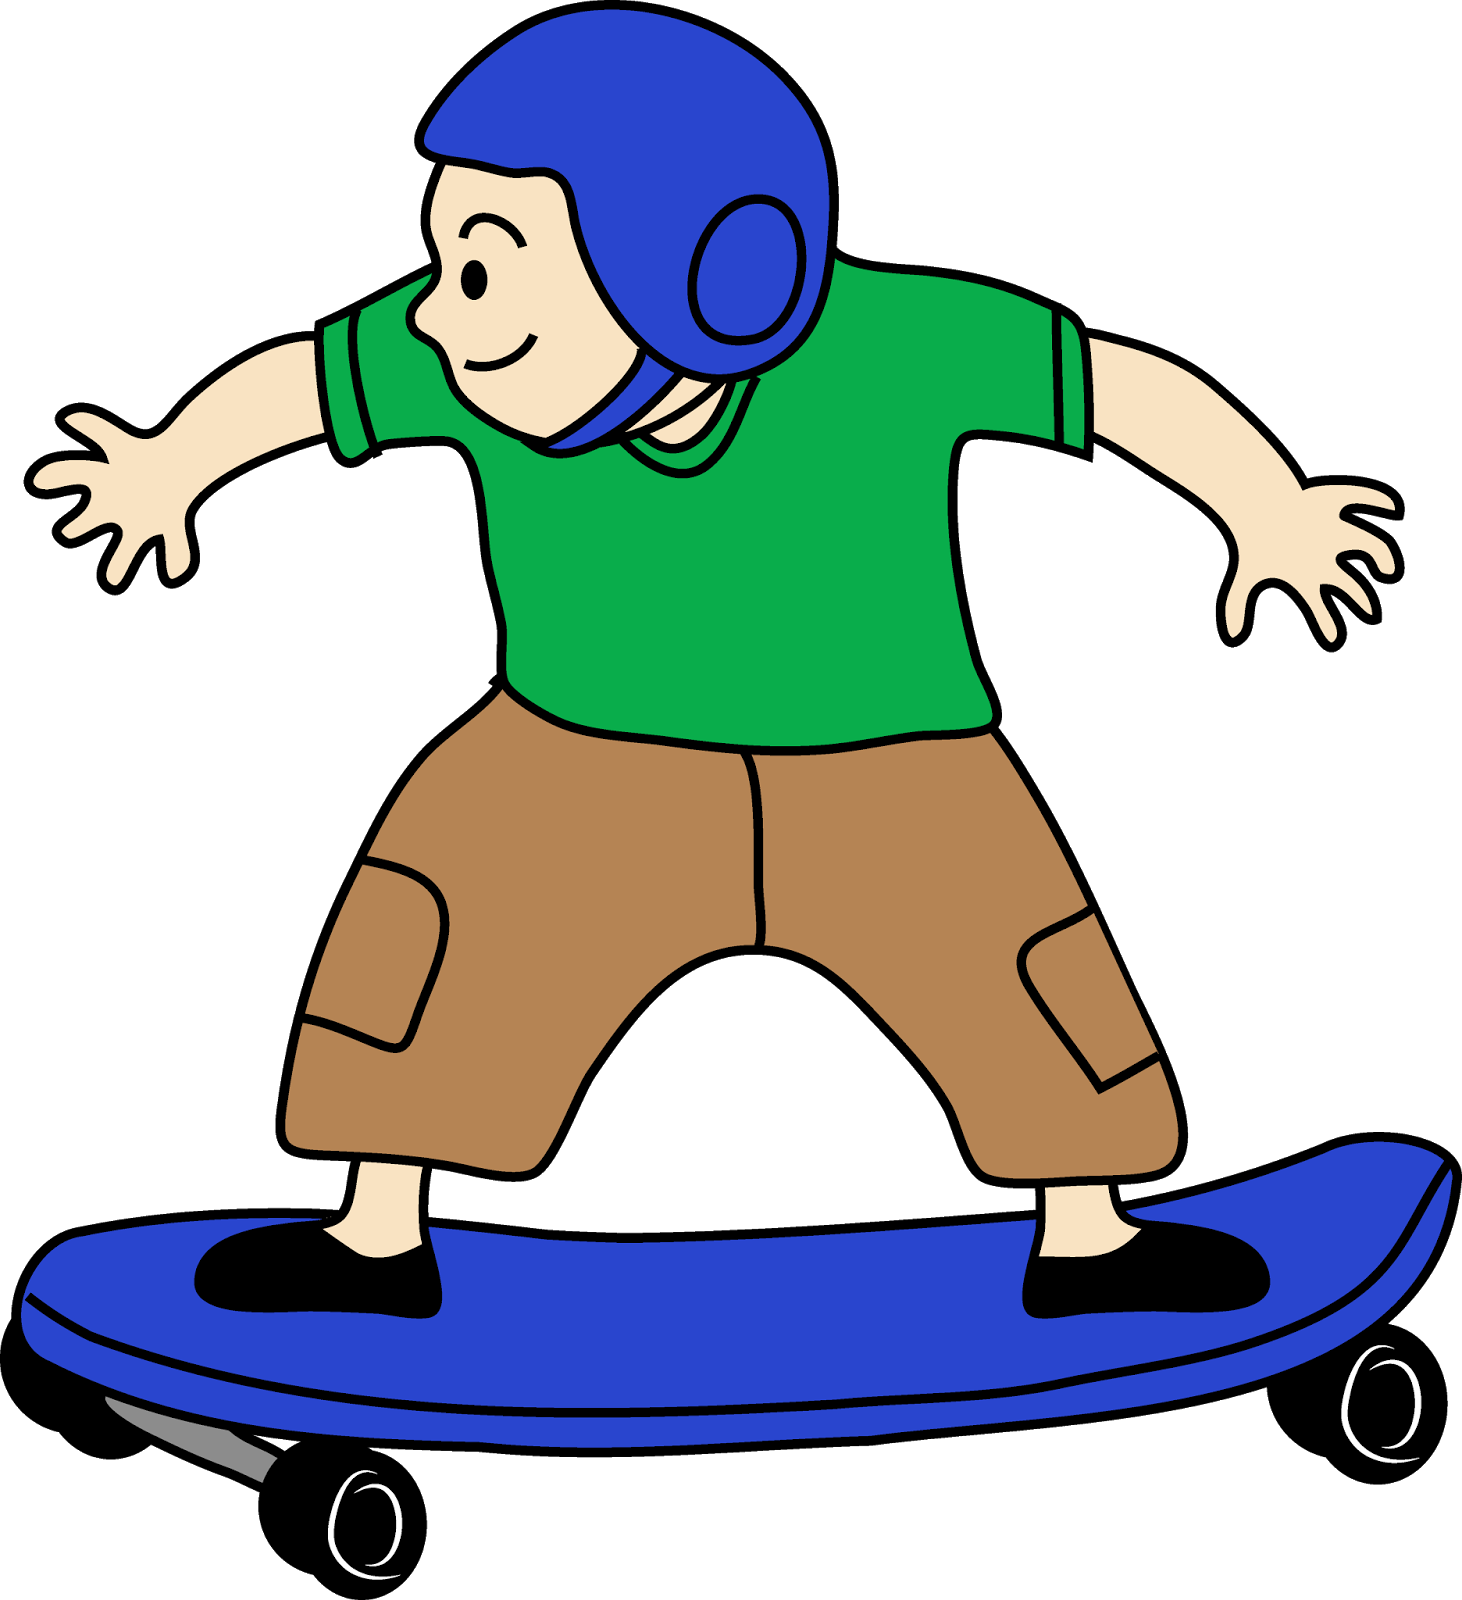 Kateboard clipart #3, Download drawings